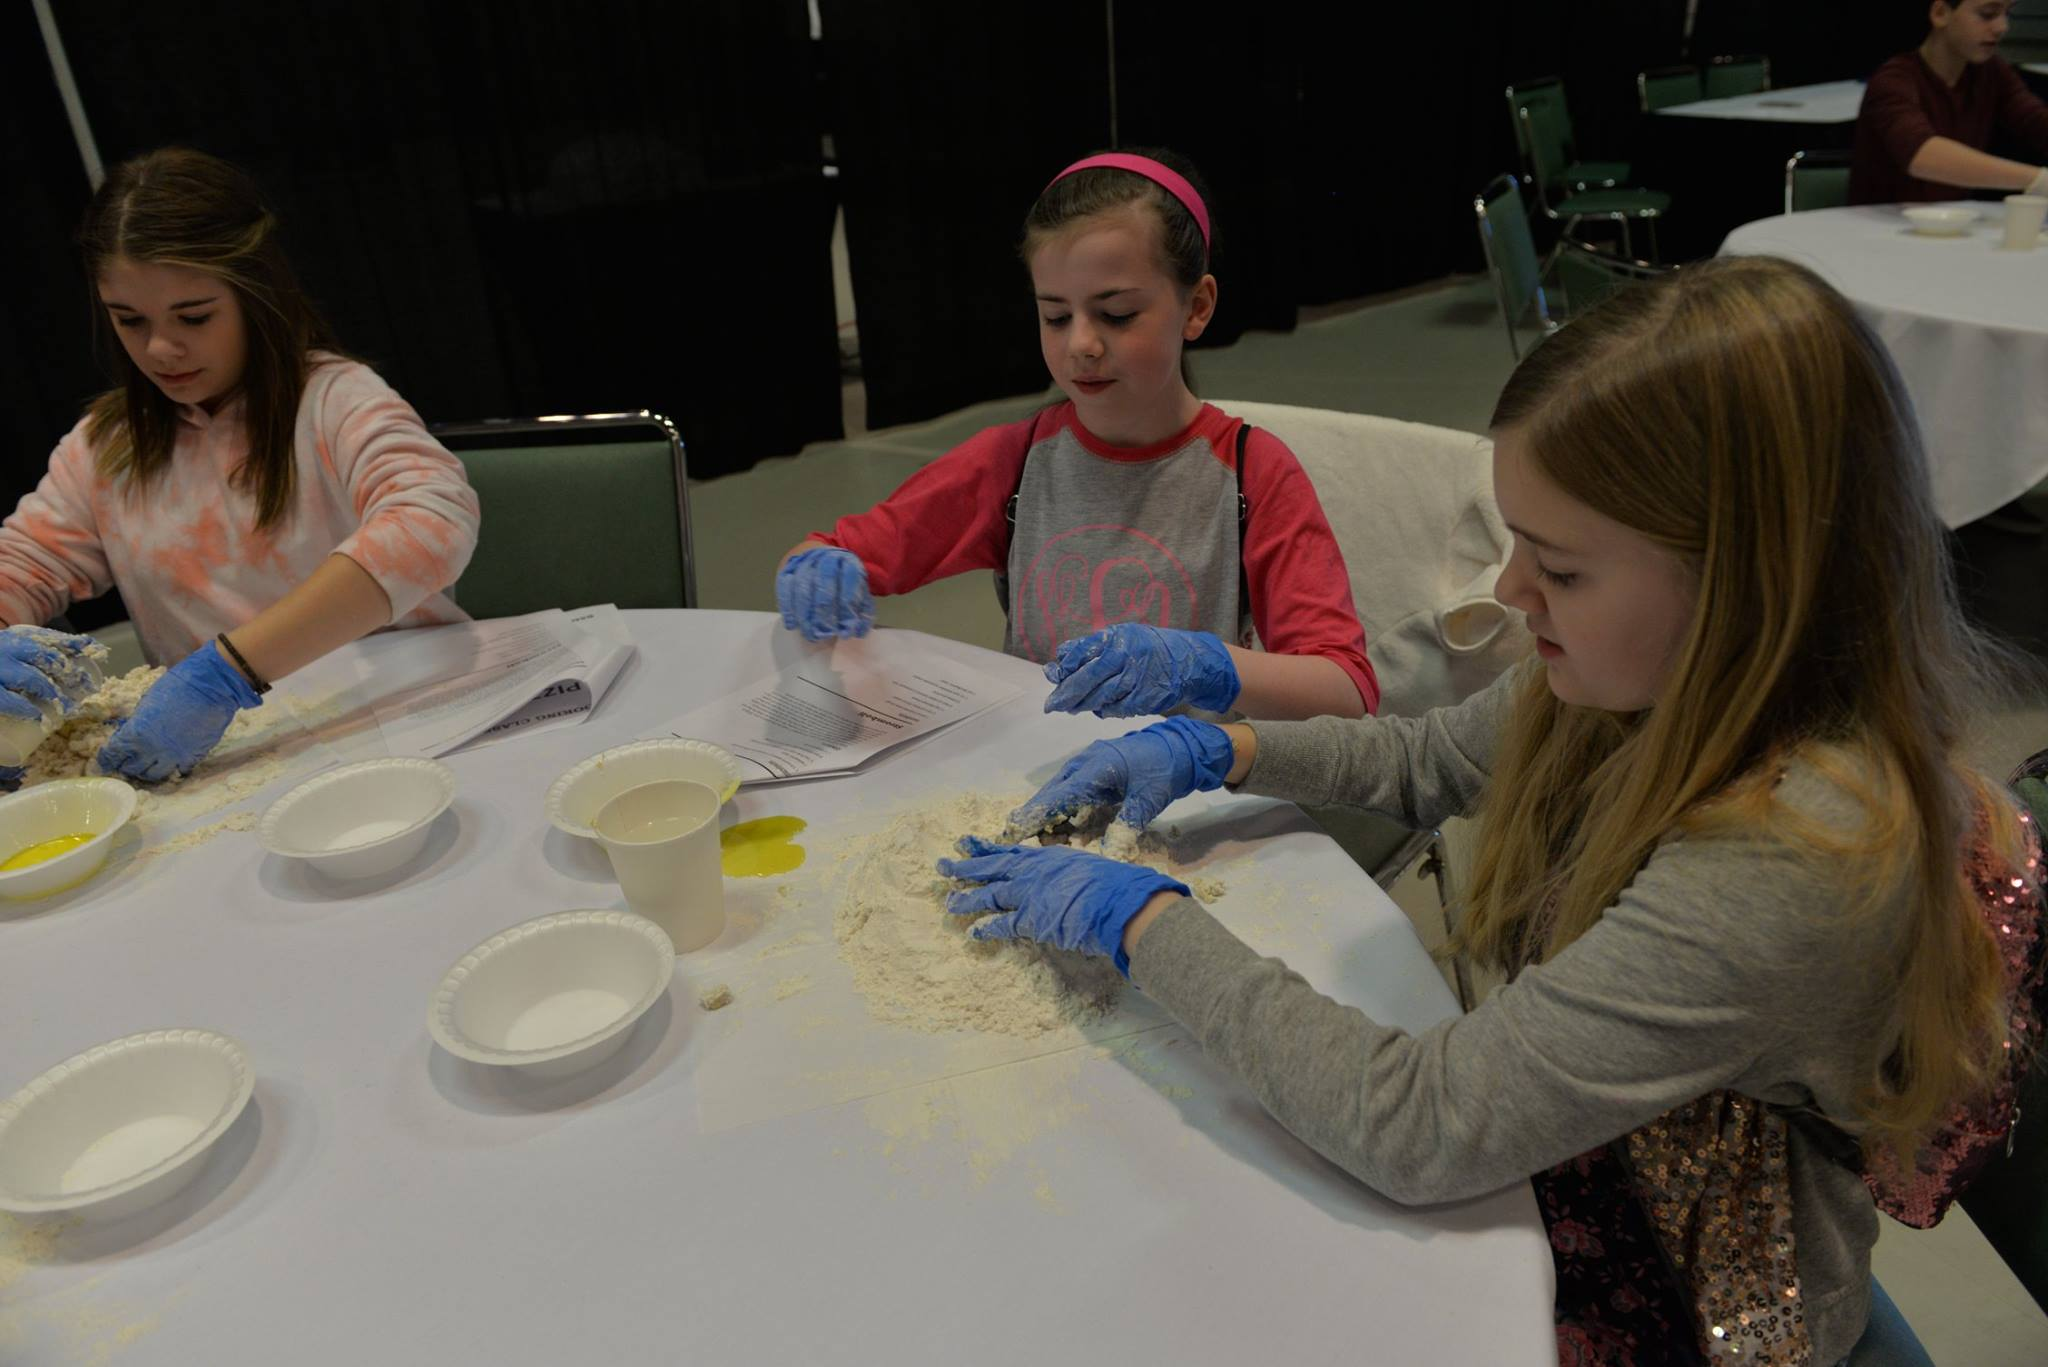 CCMS and CCHS students designed their own pizzas during a culinary arts program at The Center for Rural Development on Tuesday, January 23rd.